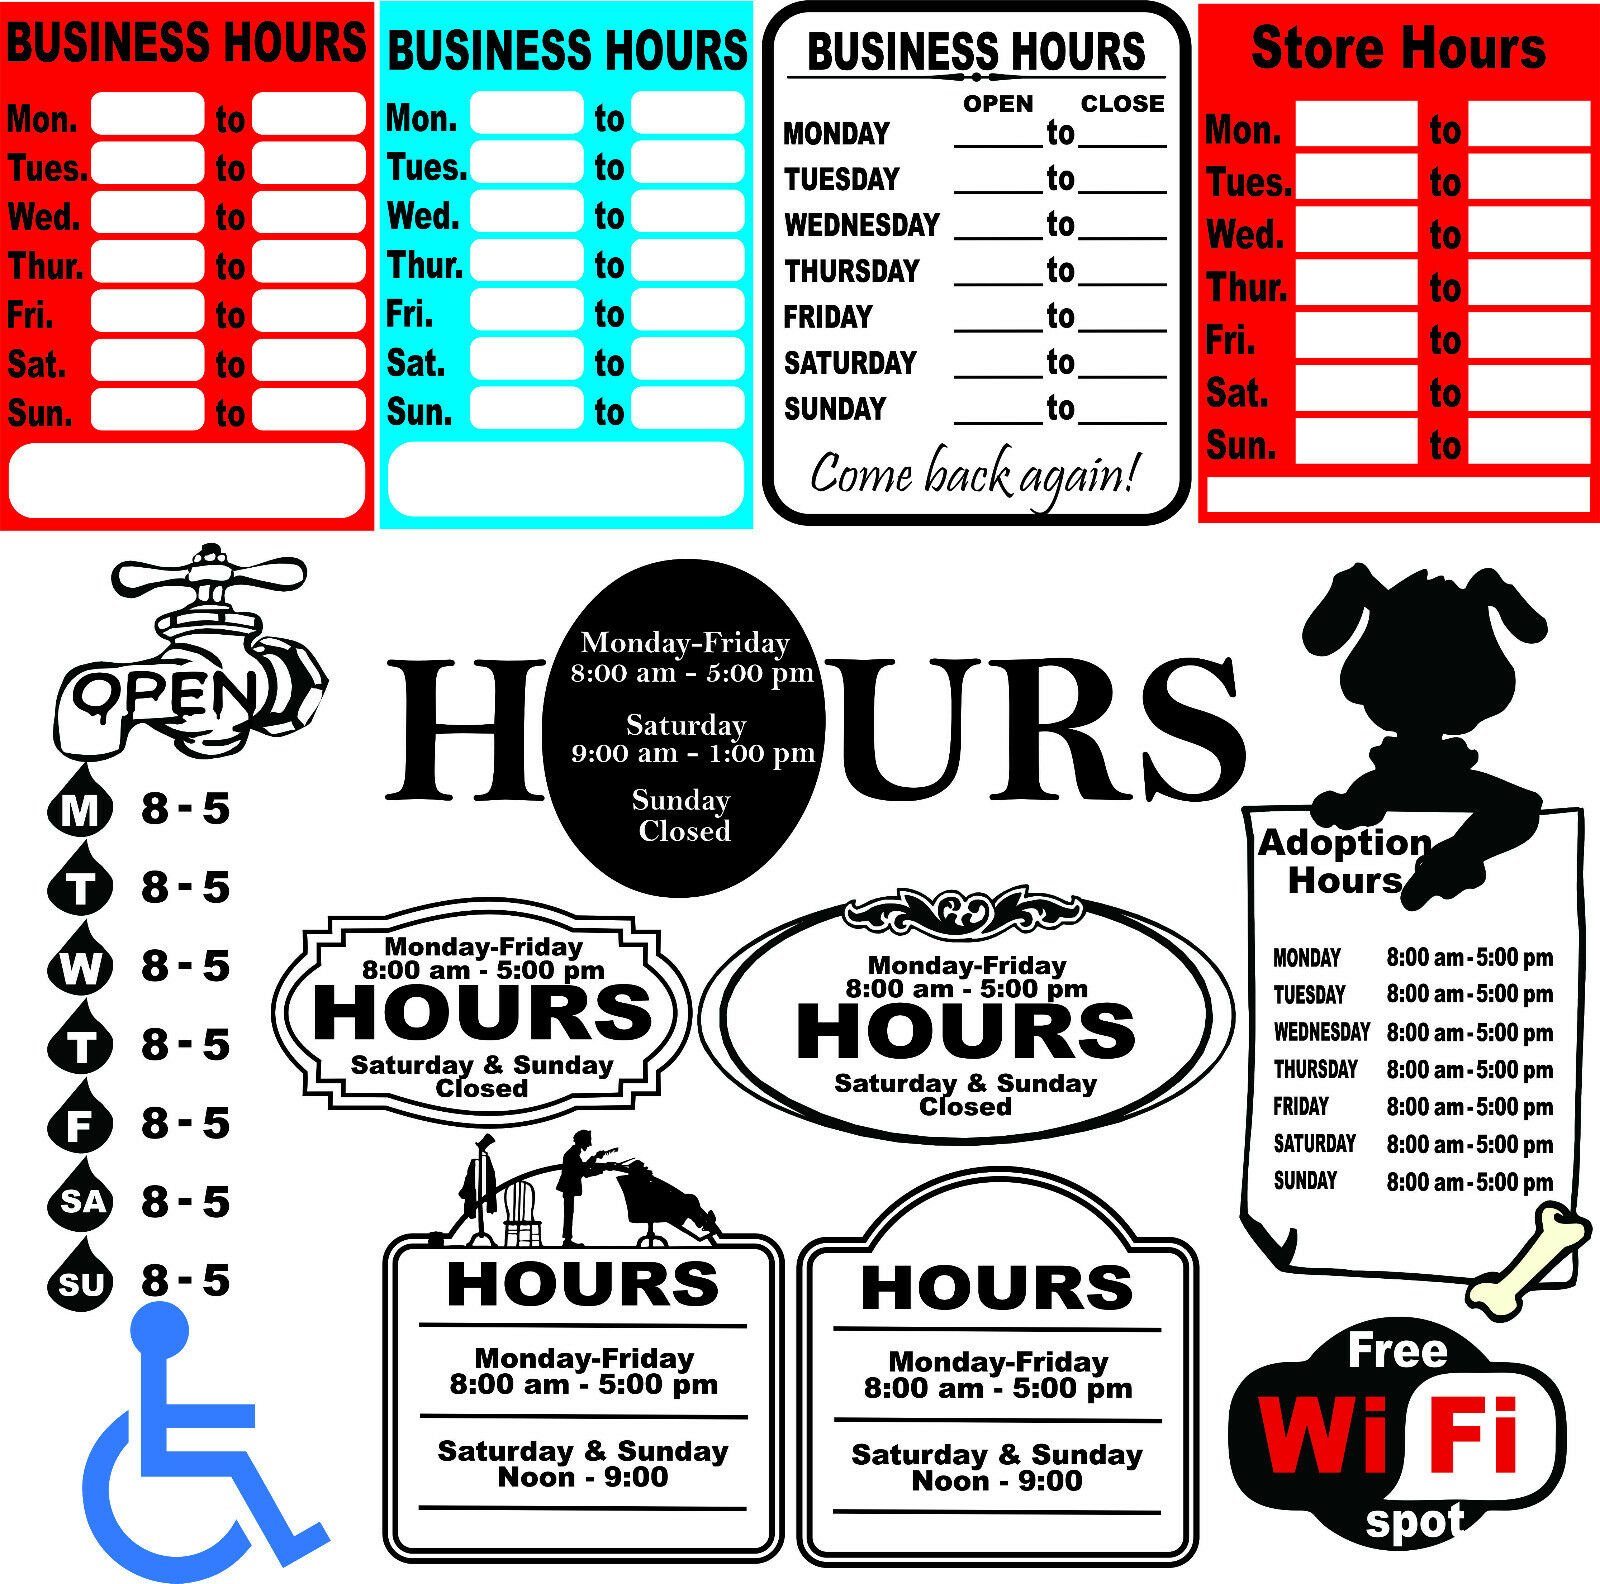 hours of operation template microsoft word - business hours sign template business hours template word